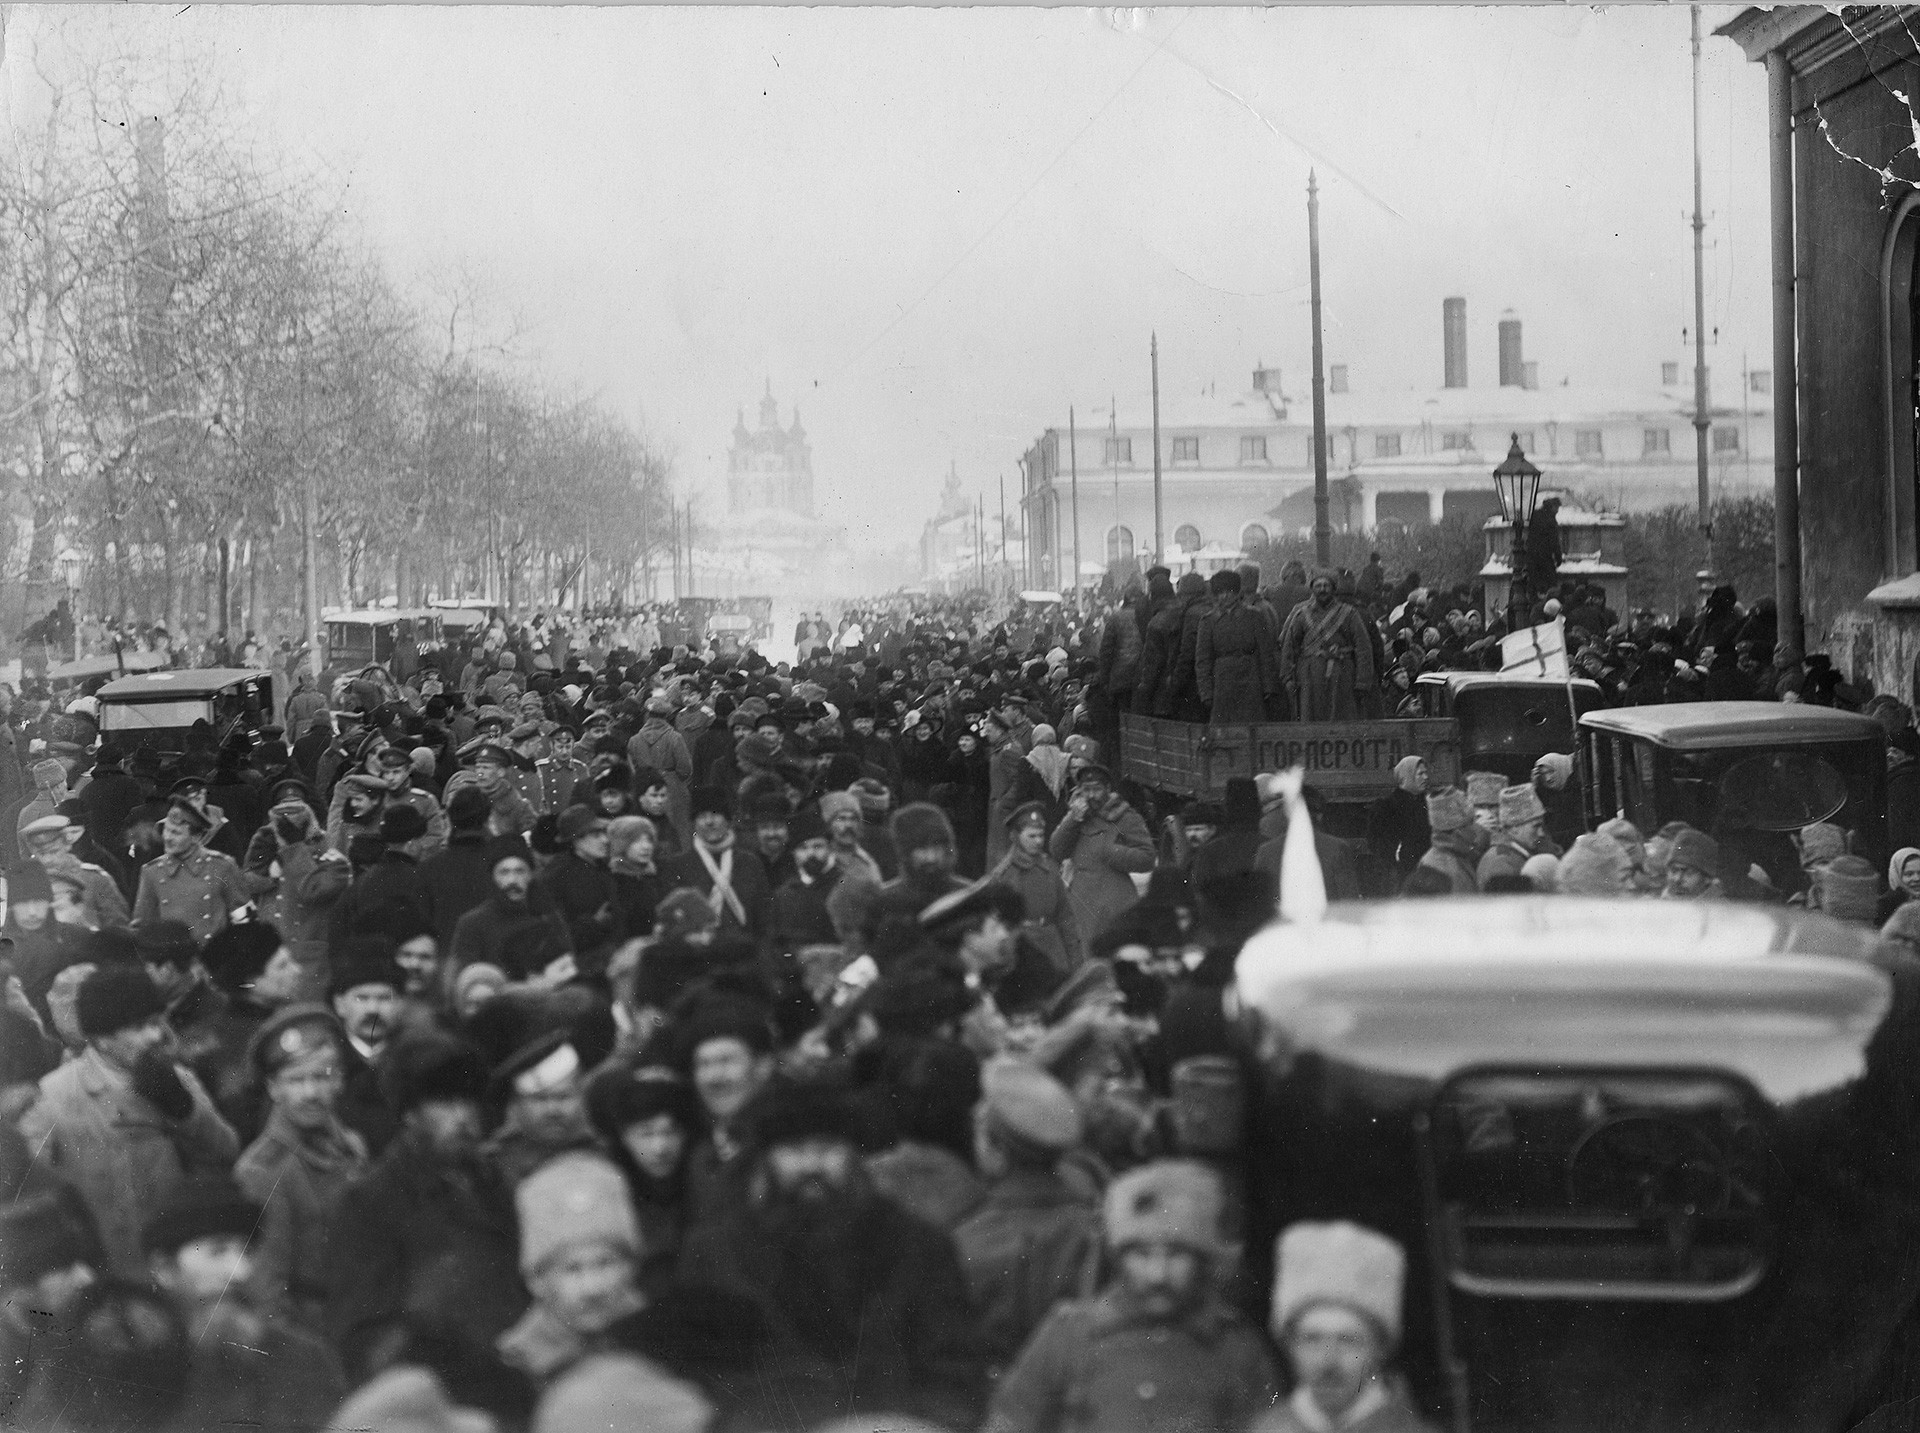 Revolutionary Petrograd (former name of St. Petersburg) in 1918.